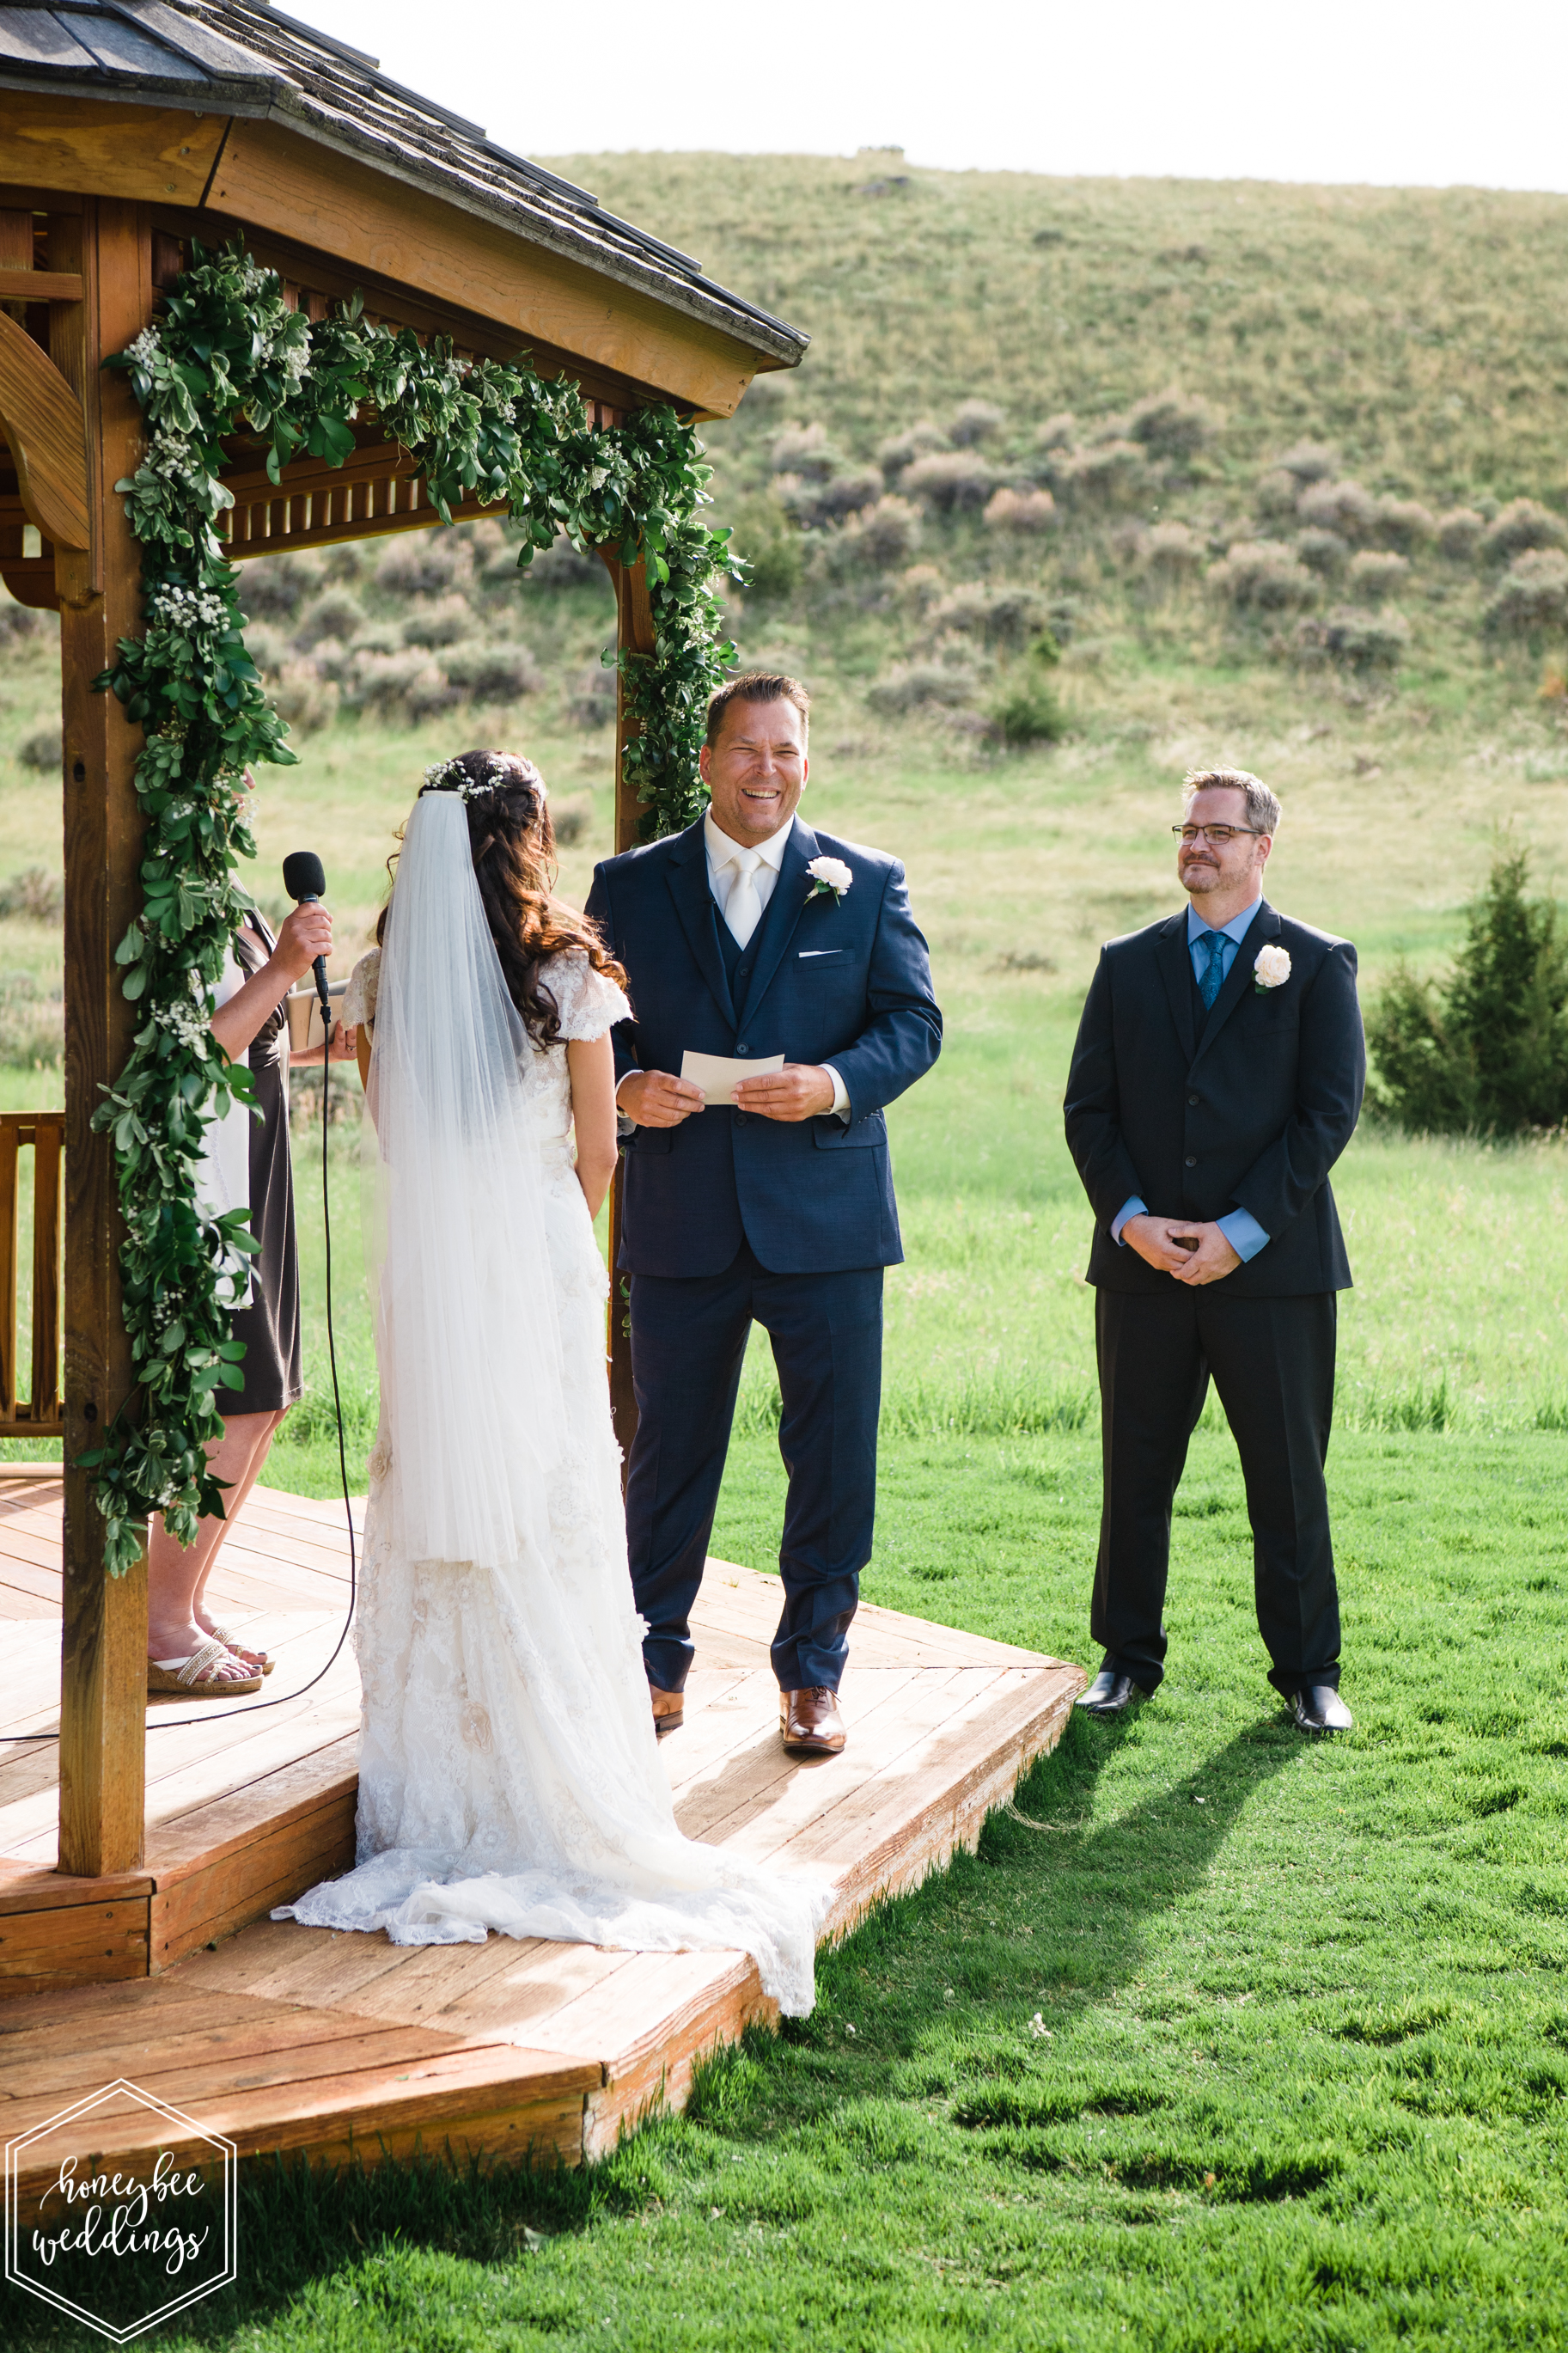 008Montana wedding photographer videographer_Chico hot springs wedding_Honeybee Weddings_Claudia & Bill_June 03, 2019-139.jpg